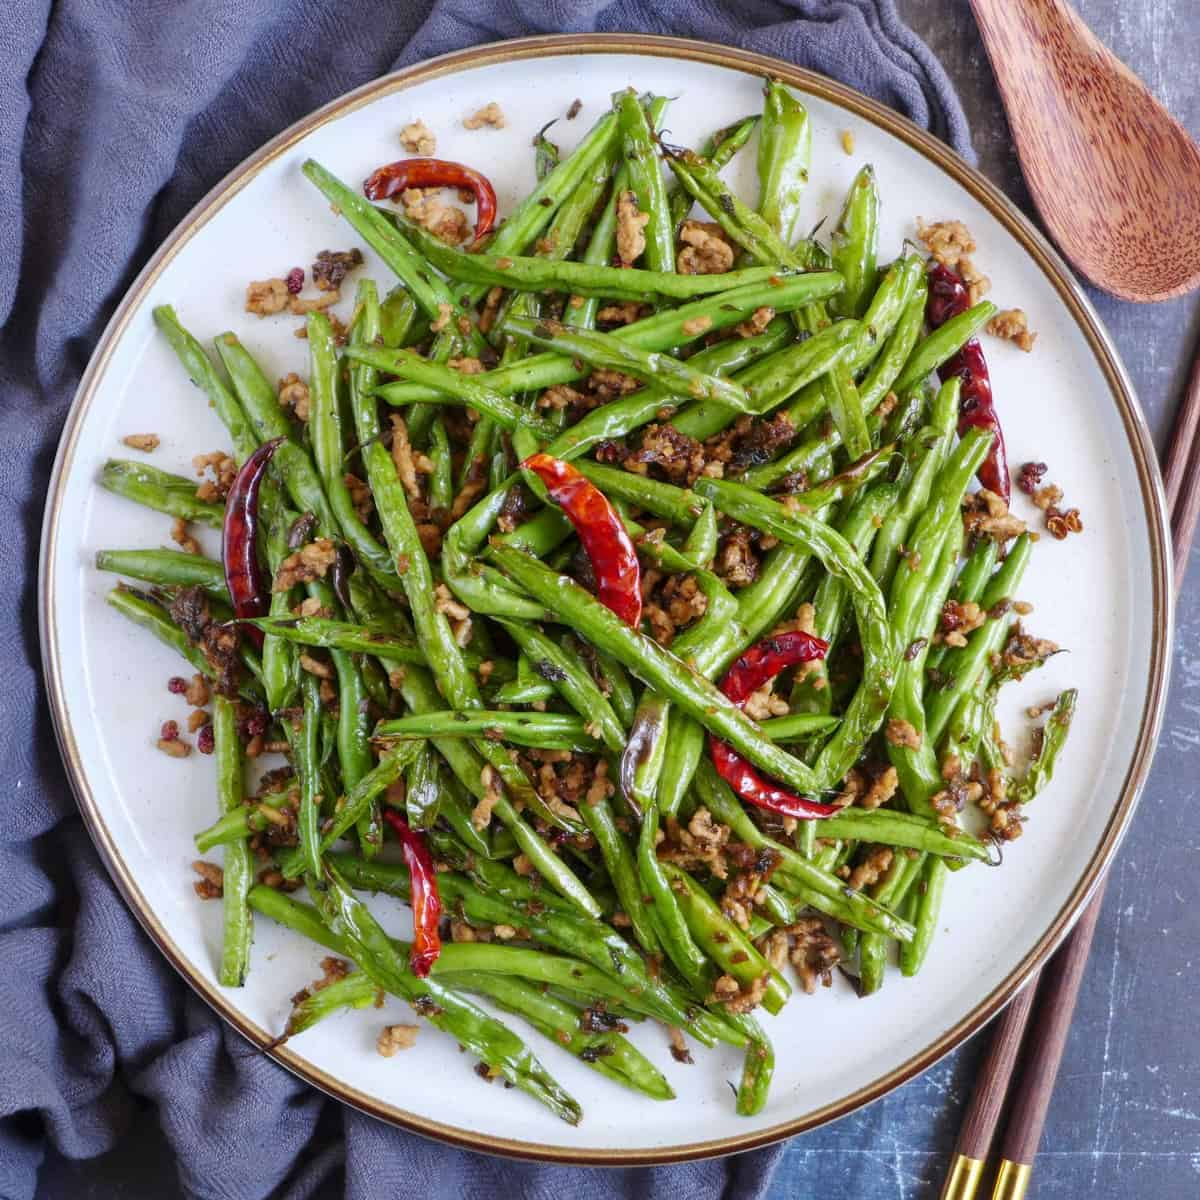 A plate of dry fried green beans